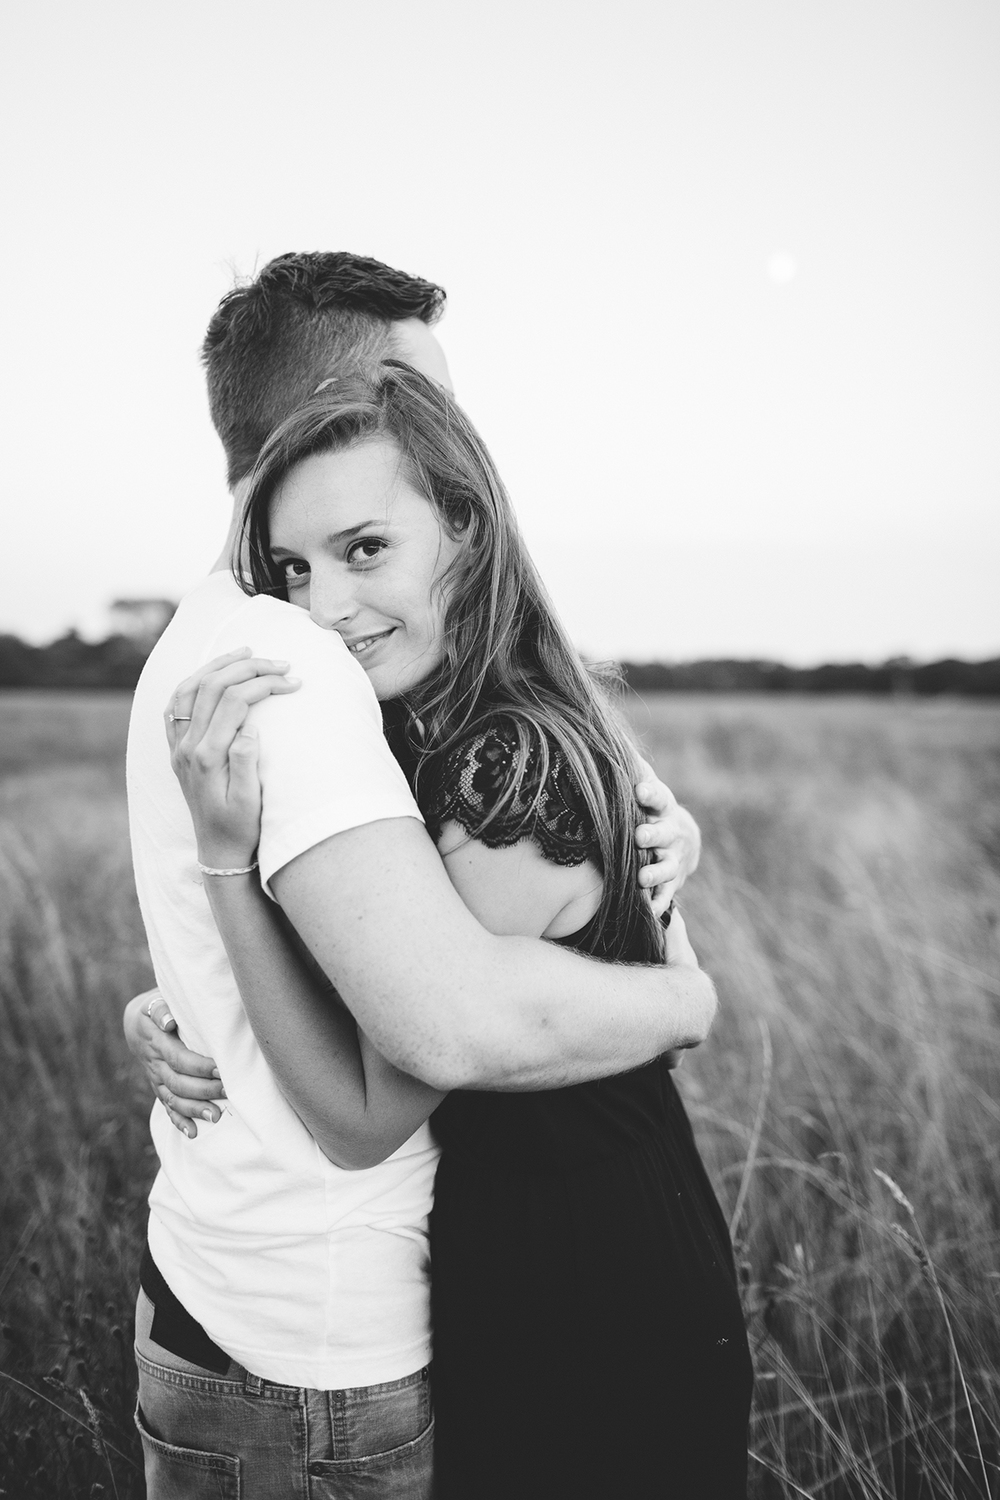 Andrew_Eve_Prewed-86.jpg